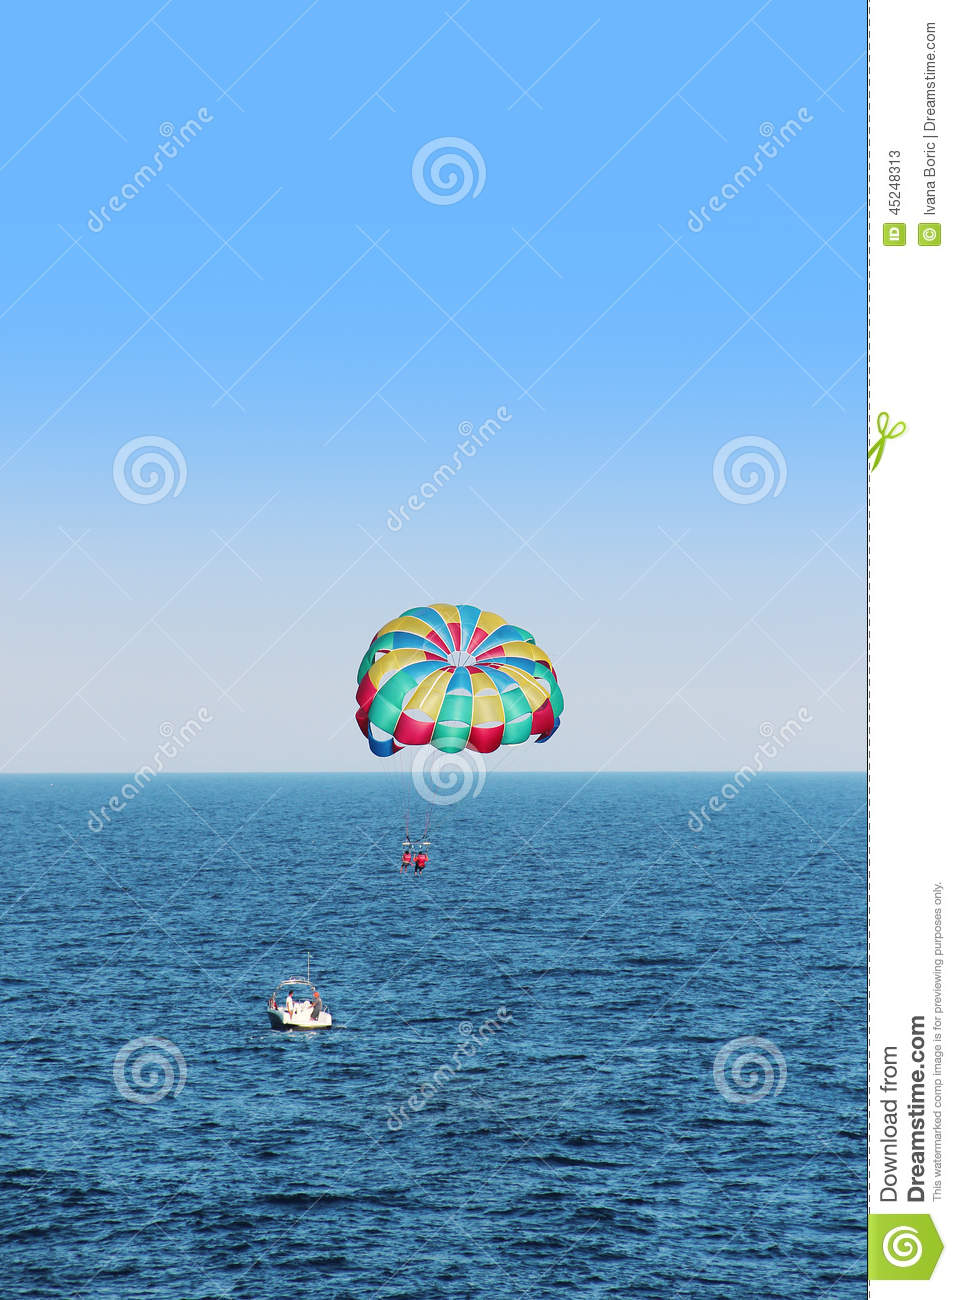 Parasailing Is An Extreme Sport, People Fly By Parachute